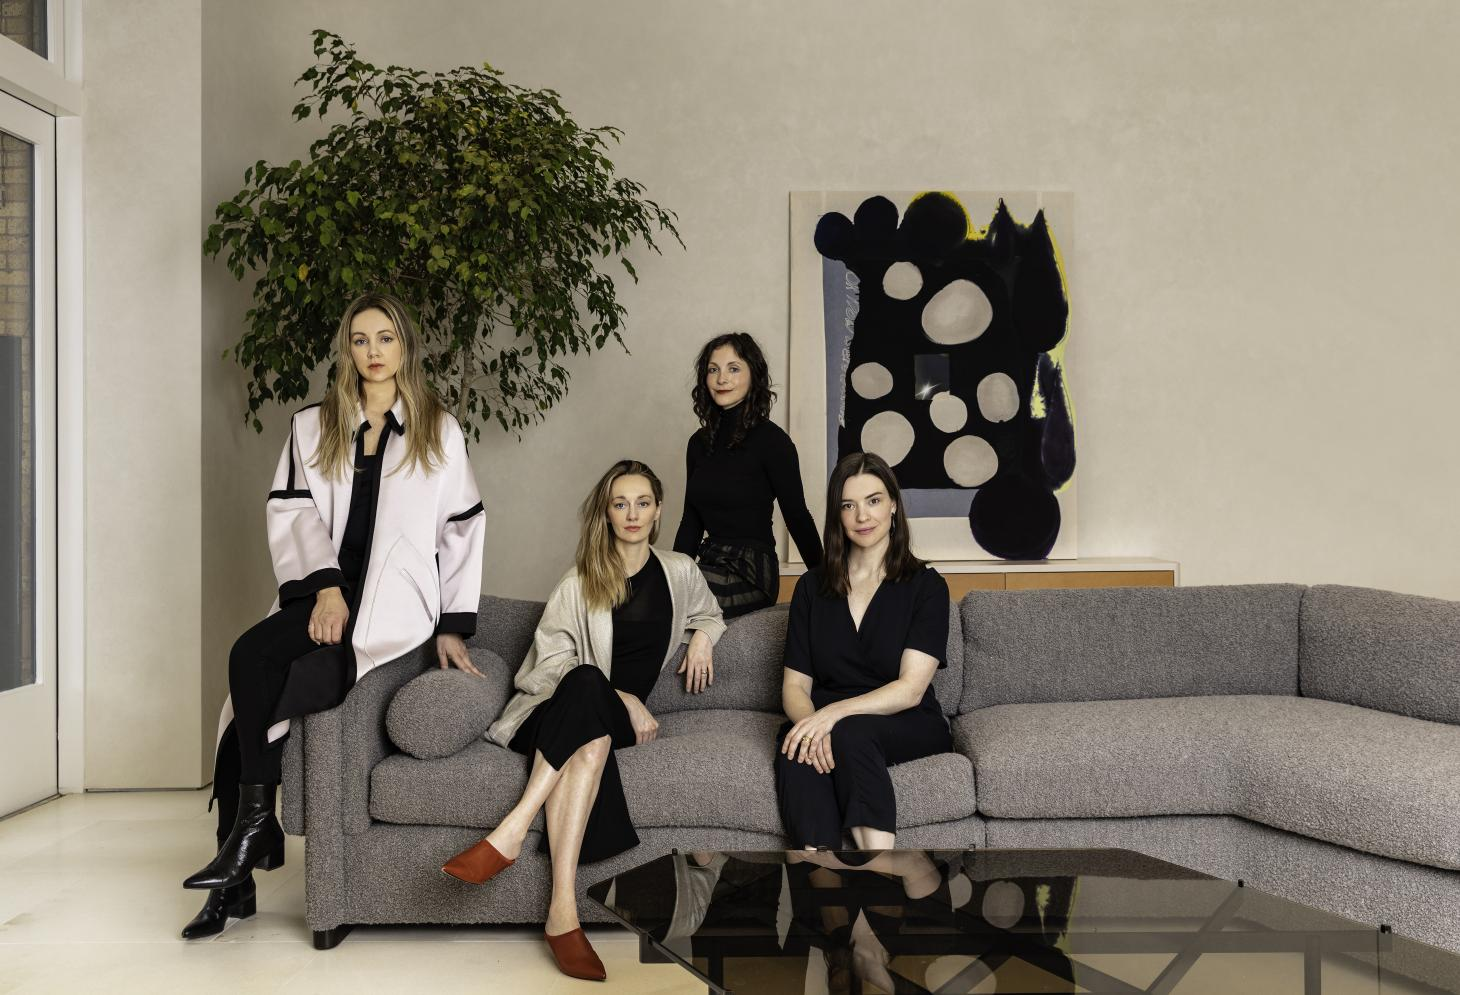 Female designers and curators Crystal Ellis, Hillary Petrie, Stephanie Beamer and Tealia Ellis Ritter on grey couch